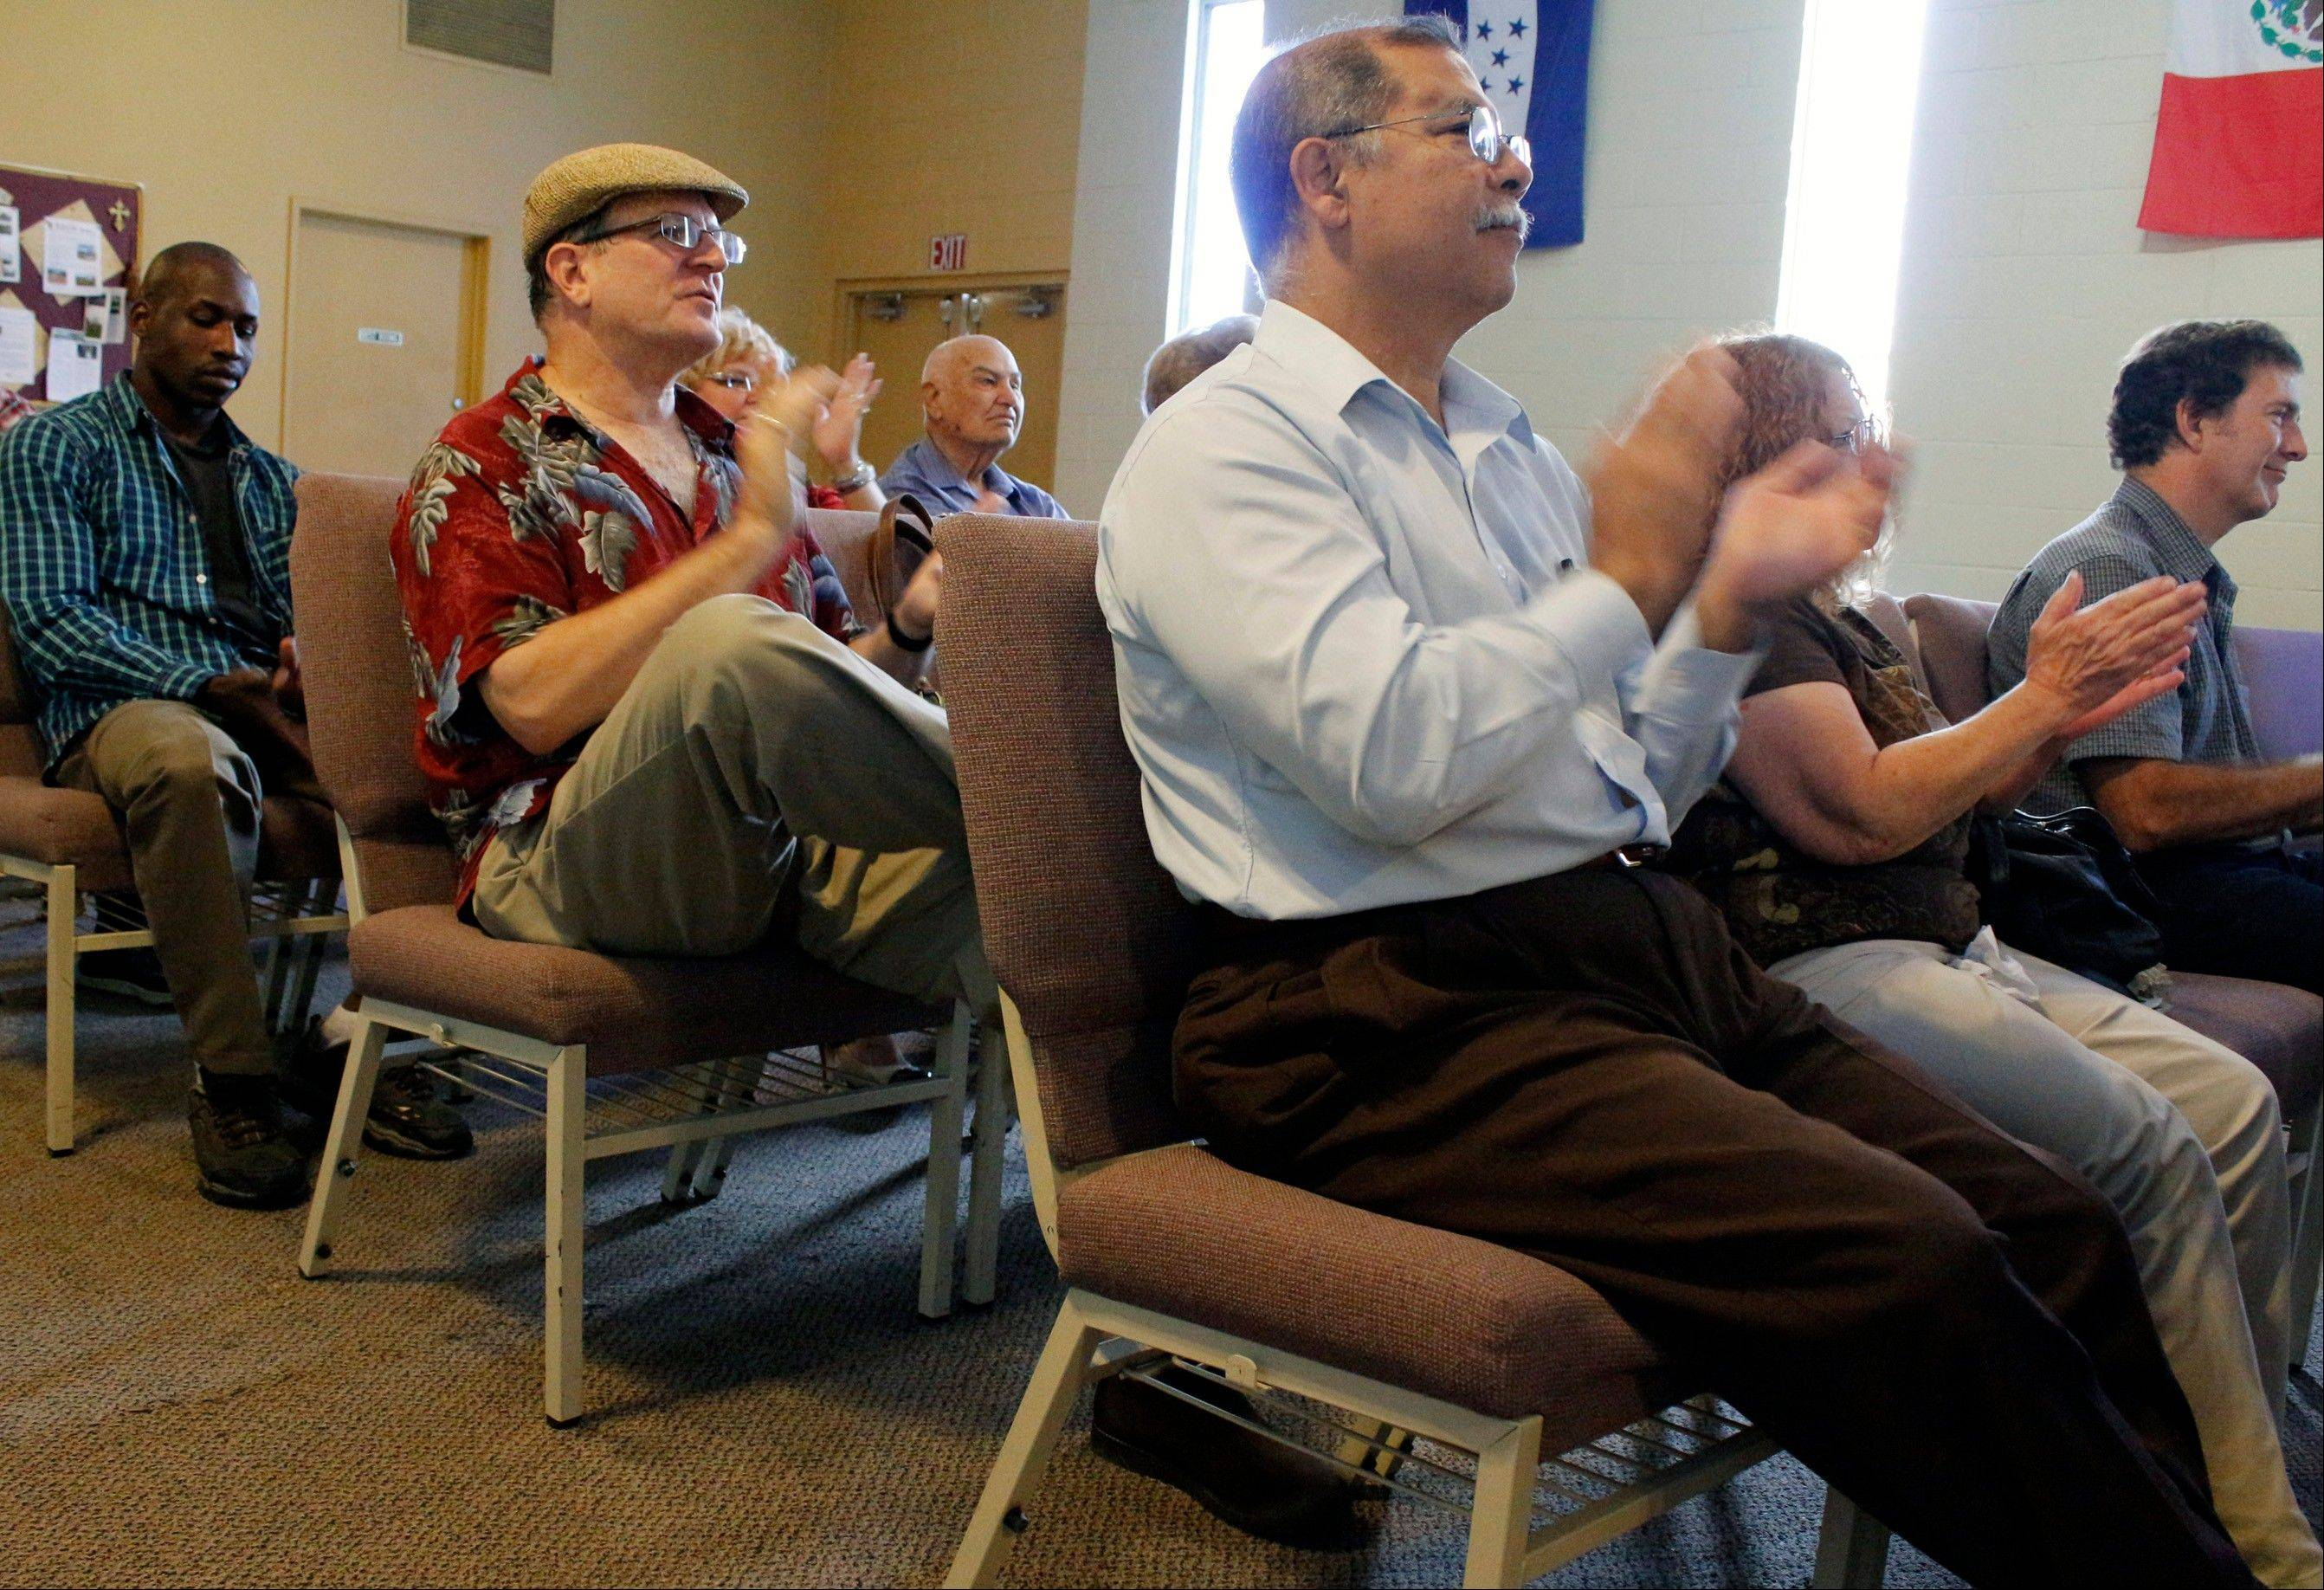 Pentecostal members attend a service at The Three Crosses Church in Chatsworth area of Los Angeles.